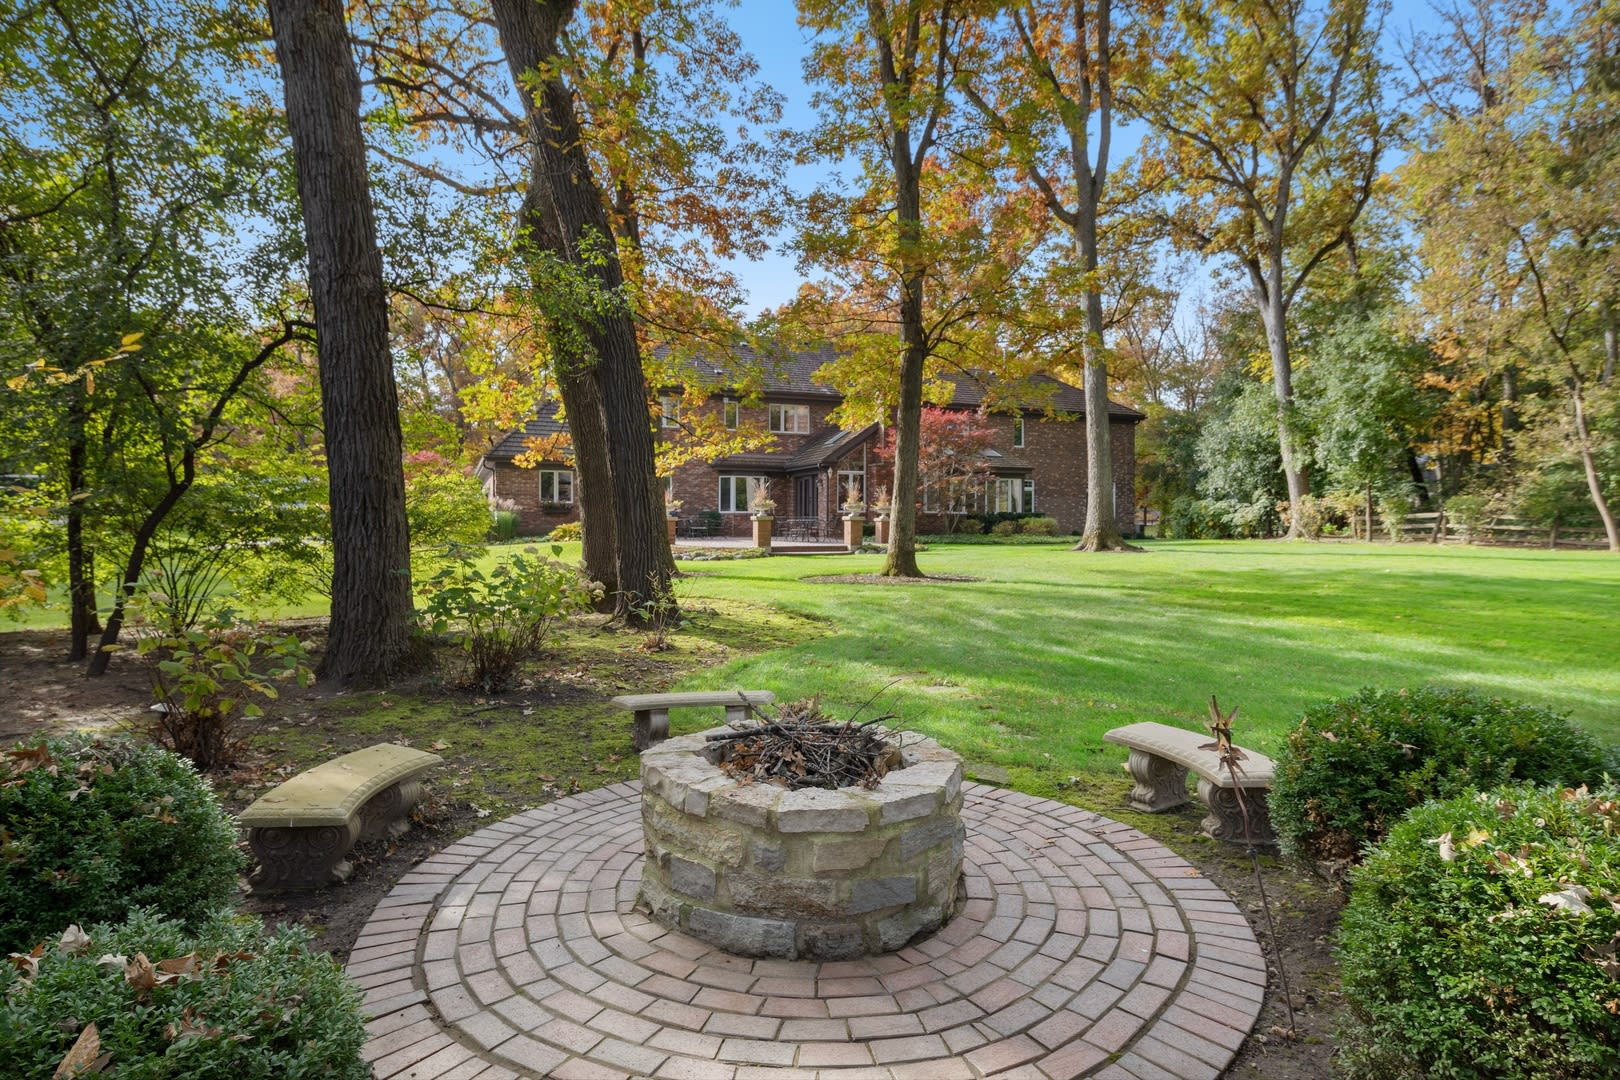 Beautifully Appointed Home in a Gated Community on Over an Acre of Professionally Landscaped Grounds with Pond Views